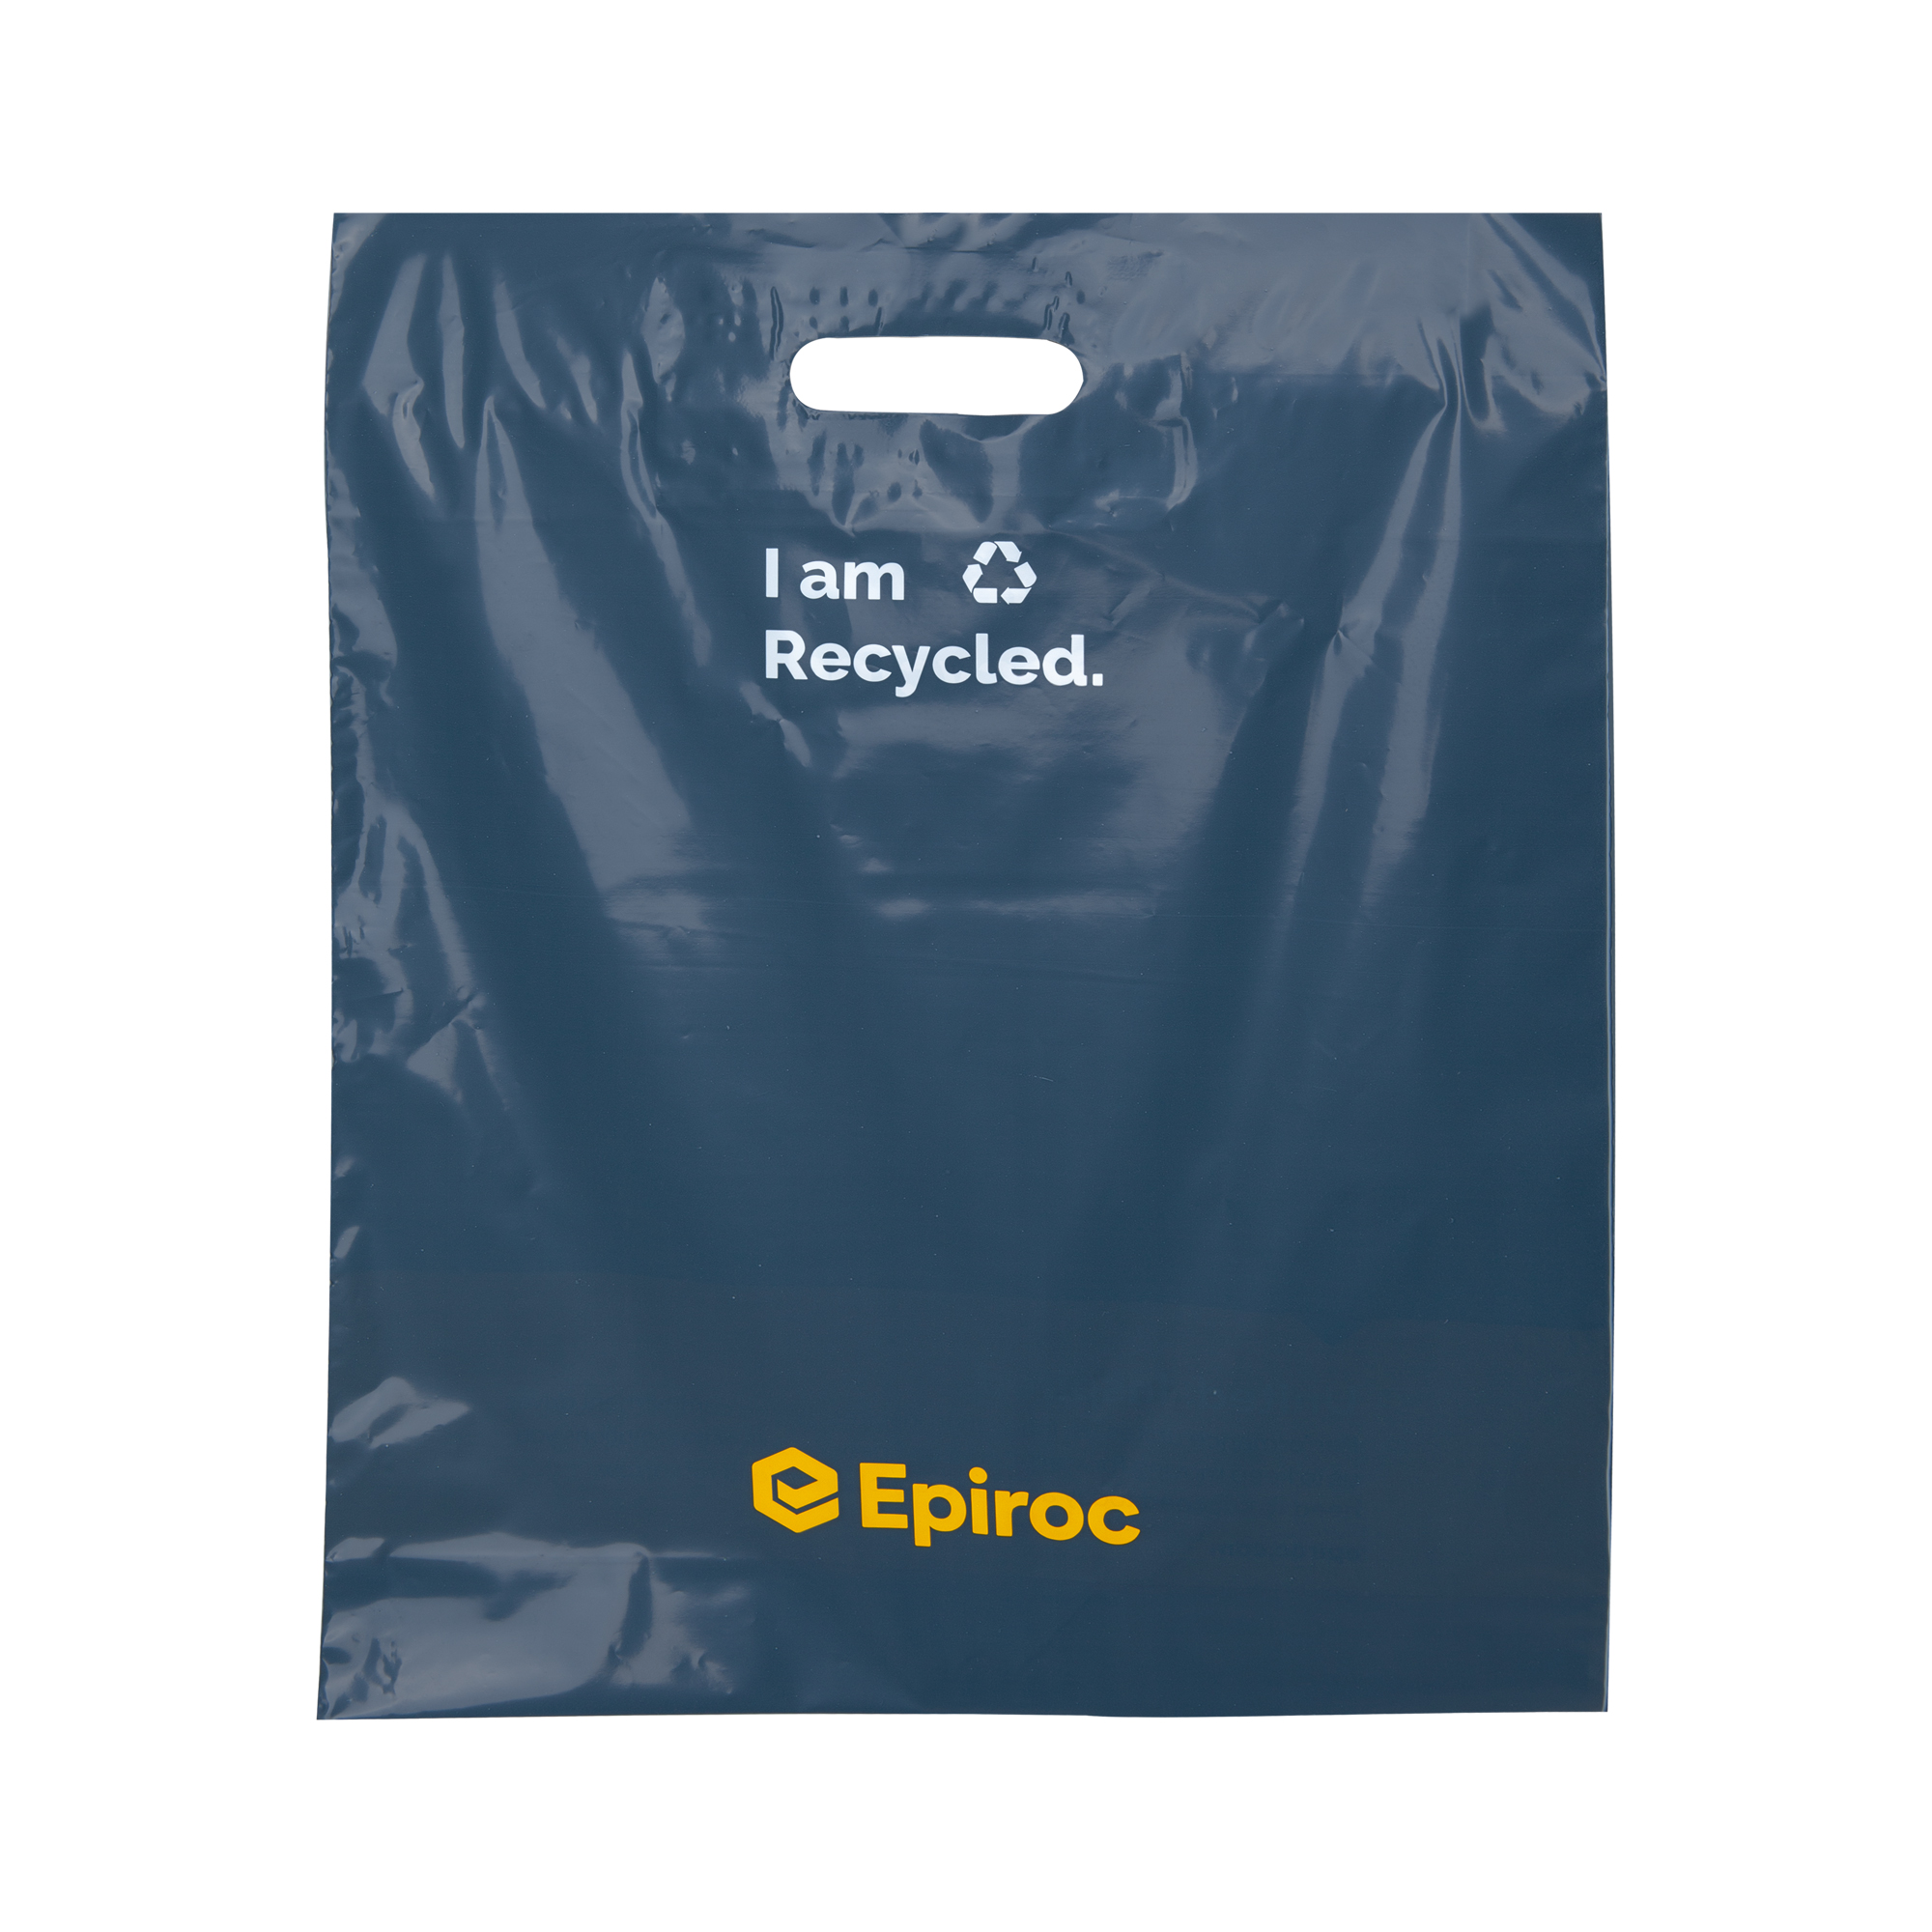 Epiroc branded plastic bag in recycled material with logo, brand promise and own pantone color. Perfect to use at events and other occasions to make the Epiroc brand visible in people's hands.